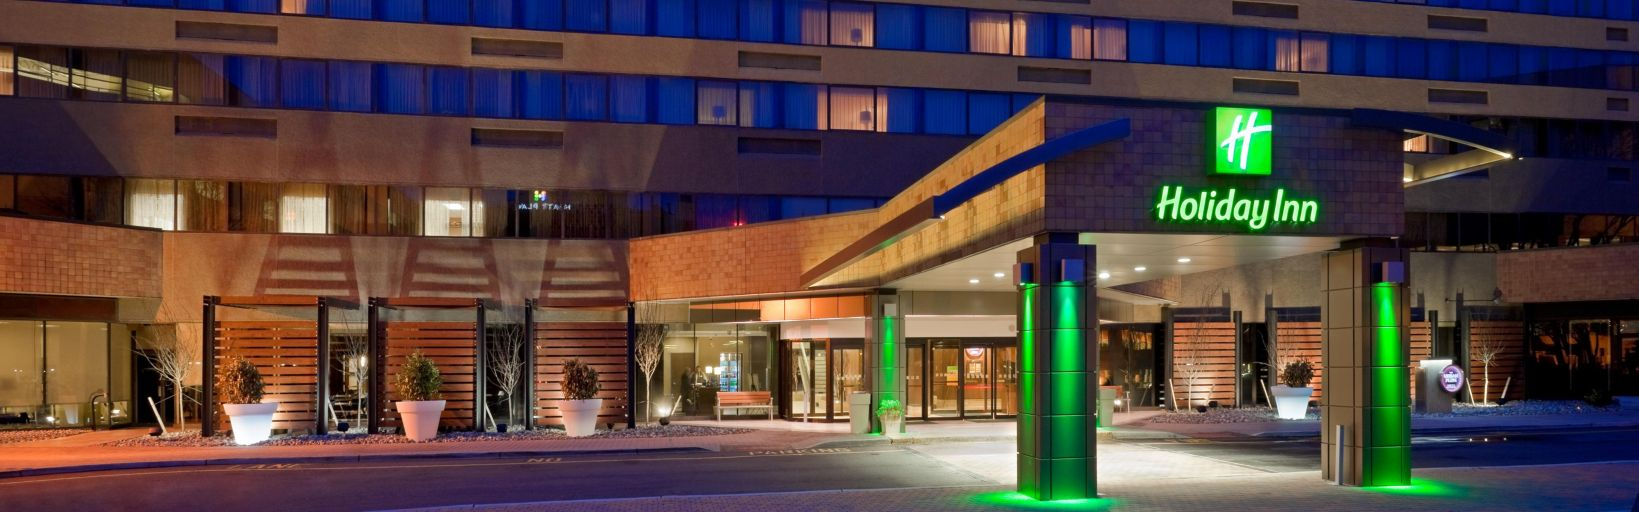 Secaucus - Holiday Inn Secaucus Meadowlands, New Jersey